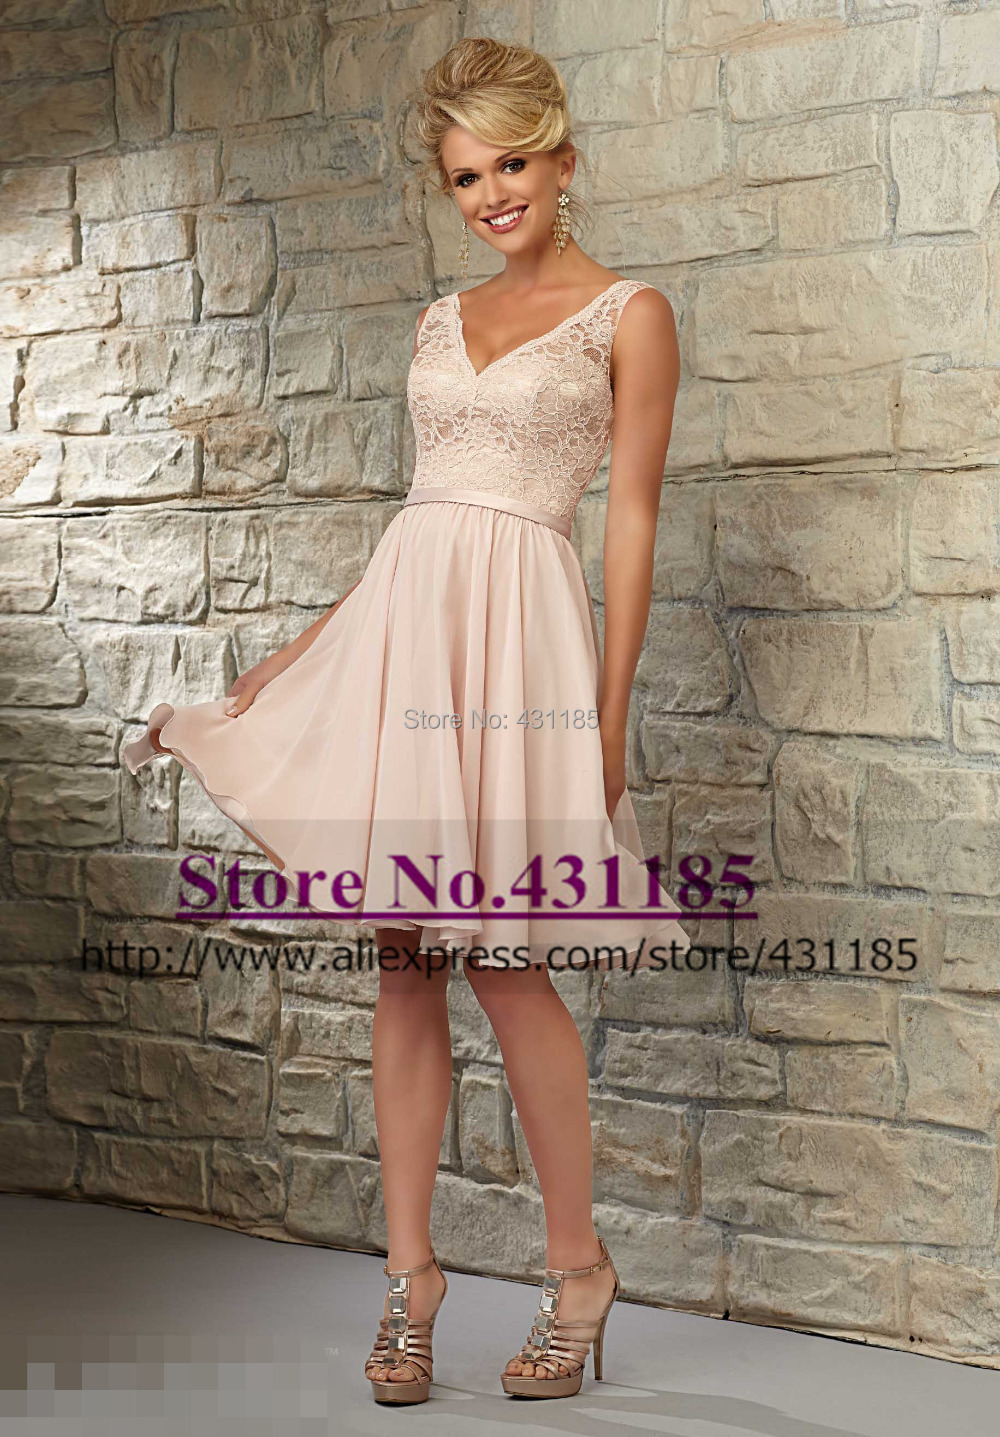 New modern wedding dresses custom vintage bridesmaid dresses custom vintage bridesmaid dresses ombrellifo Image collections